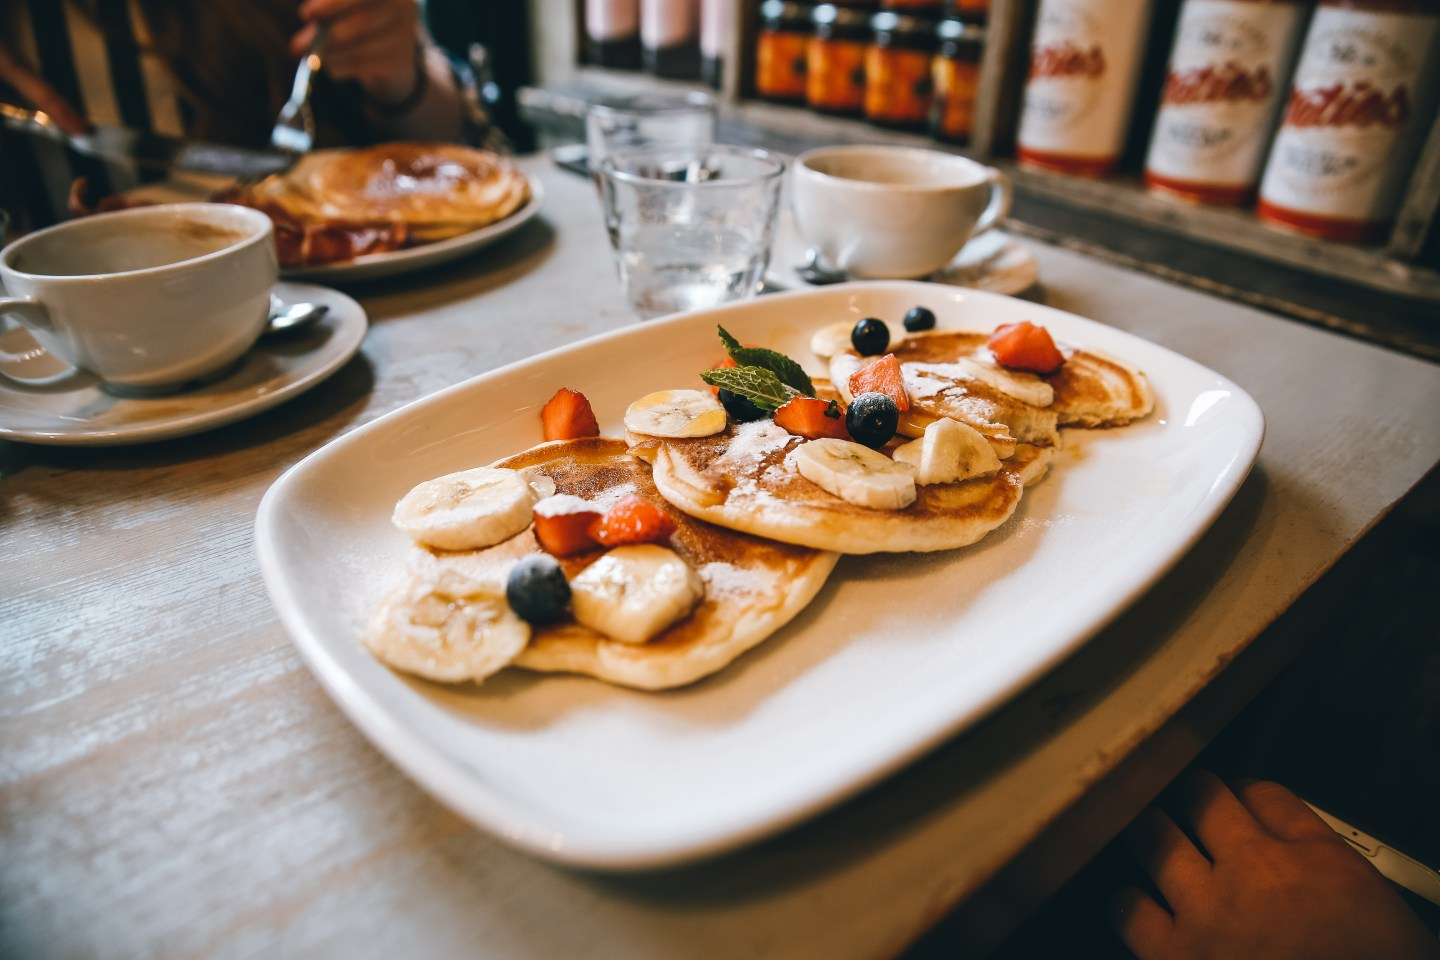 Things to do in Glasgow: Pancakes at Bill's Glasgow